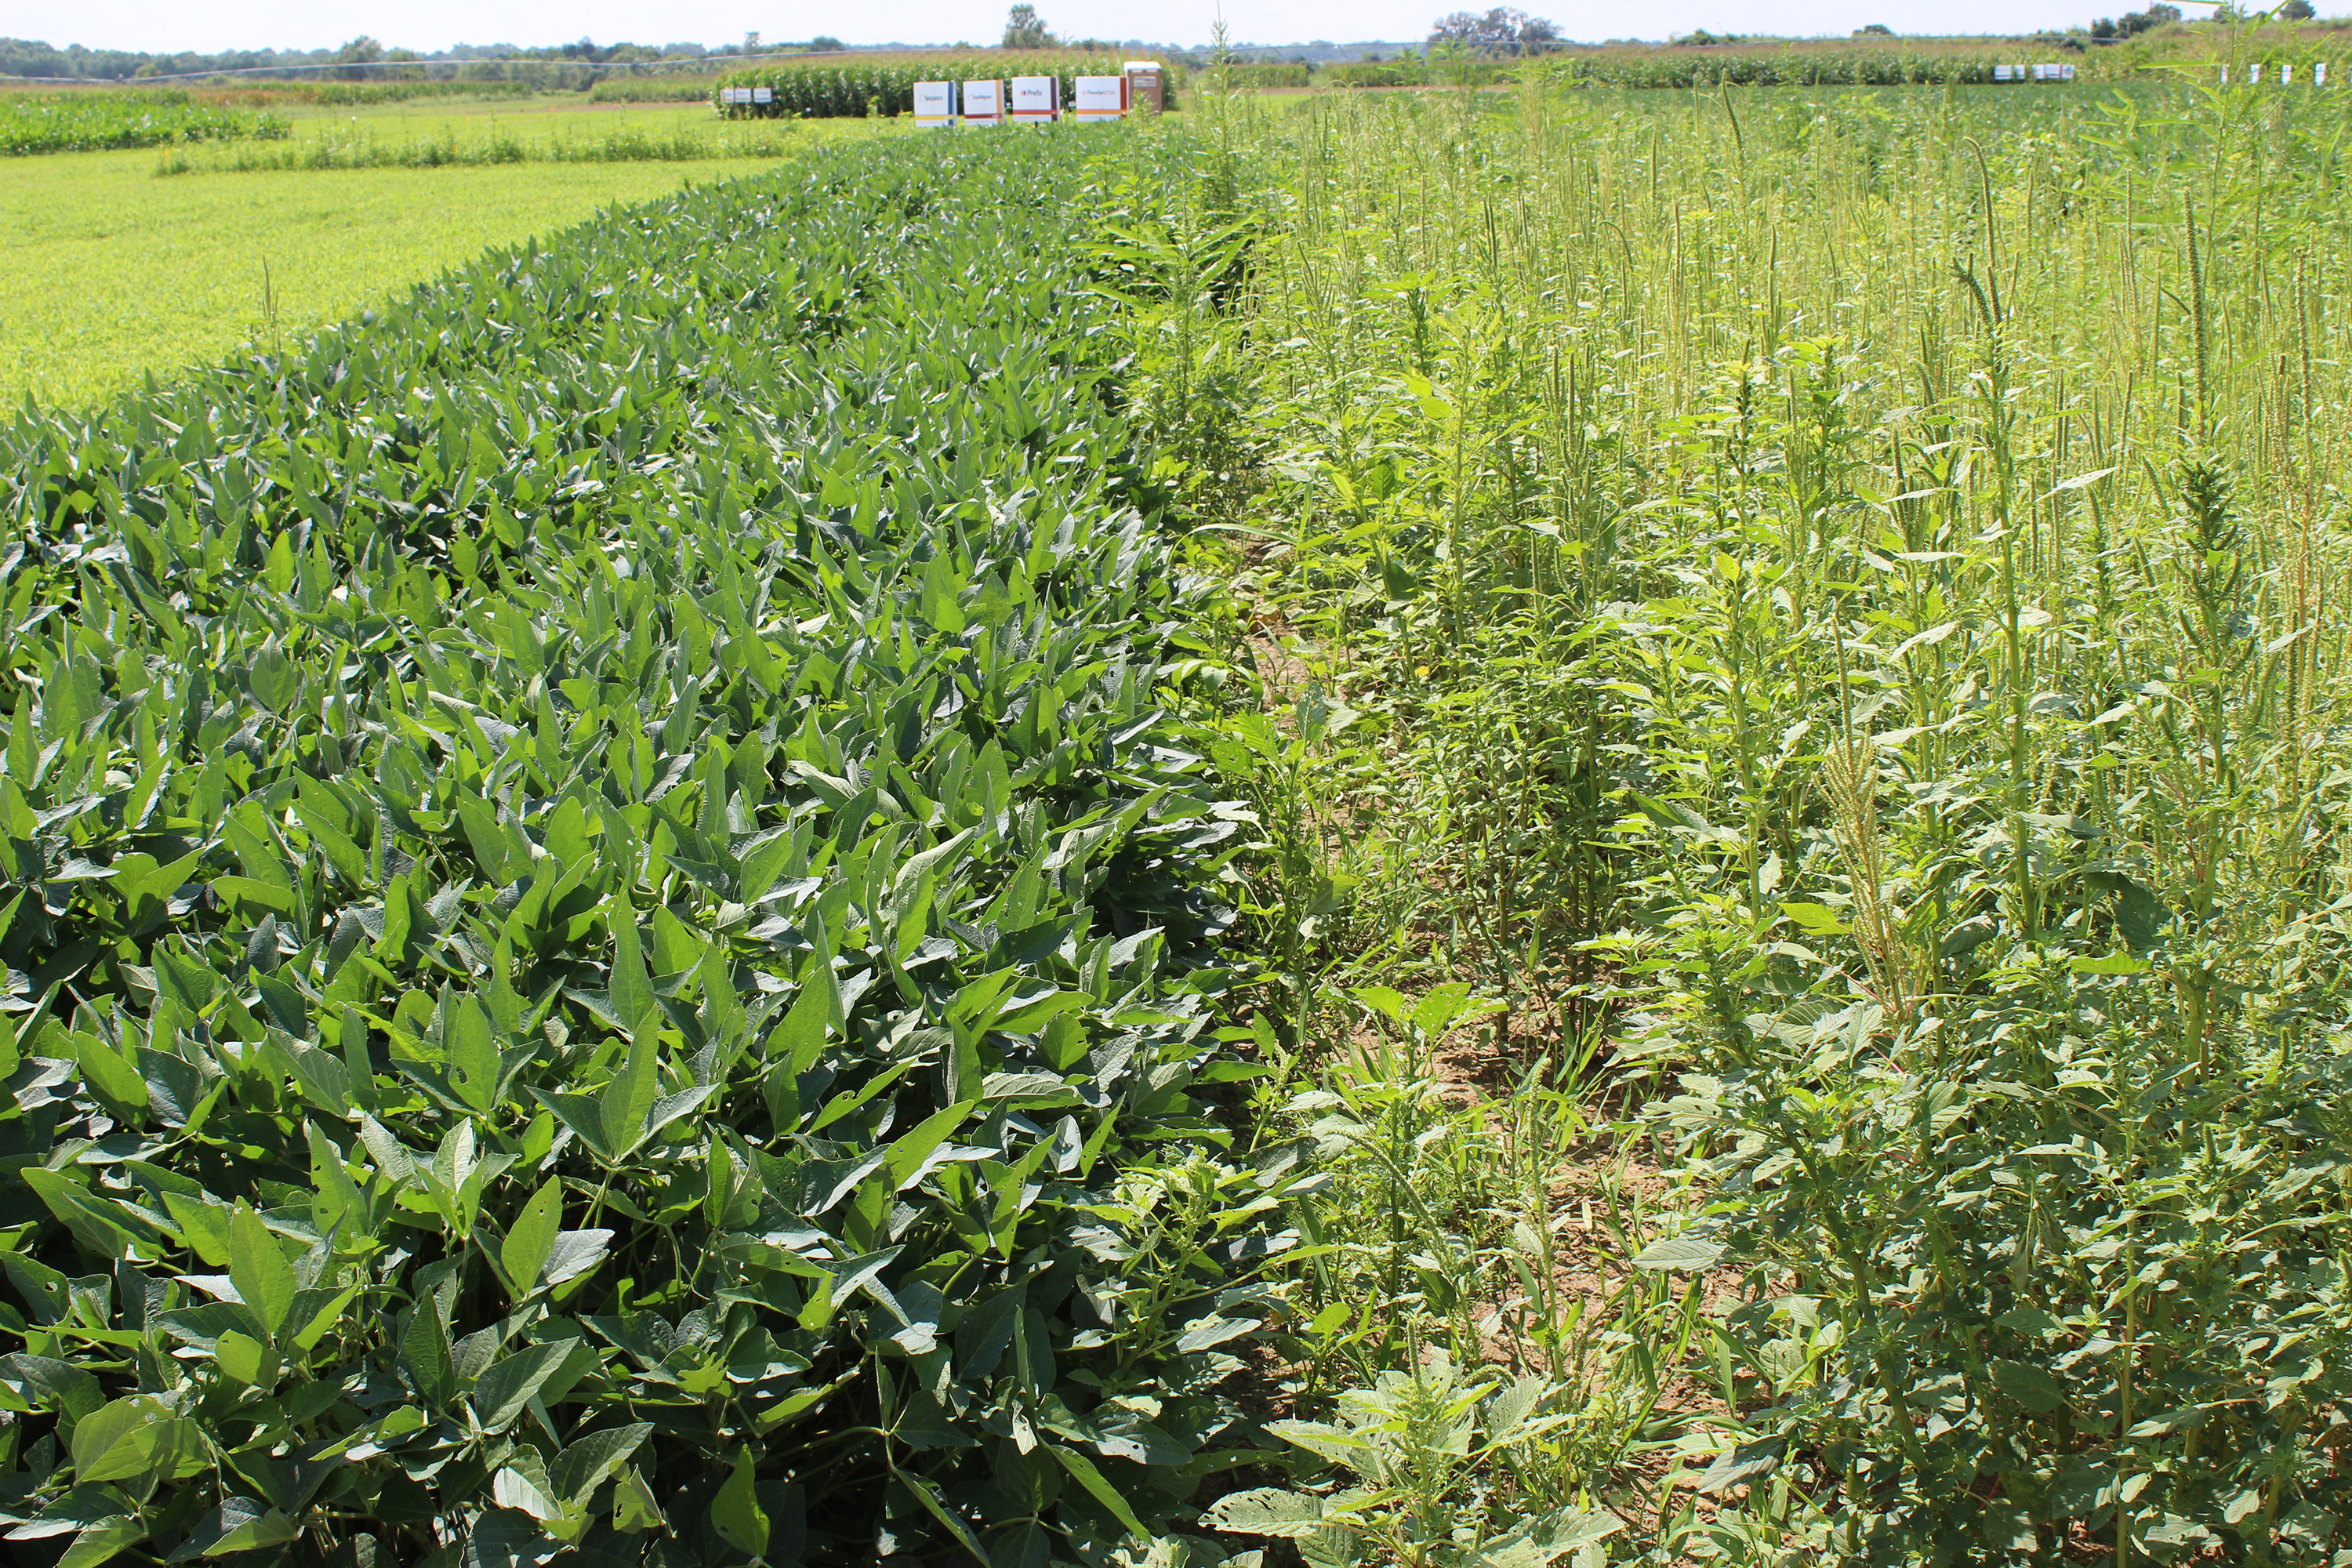 An agronomic image showing weed management.